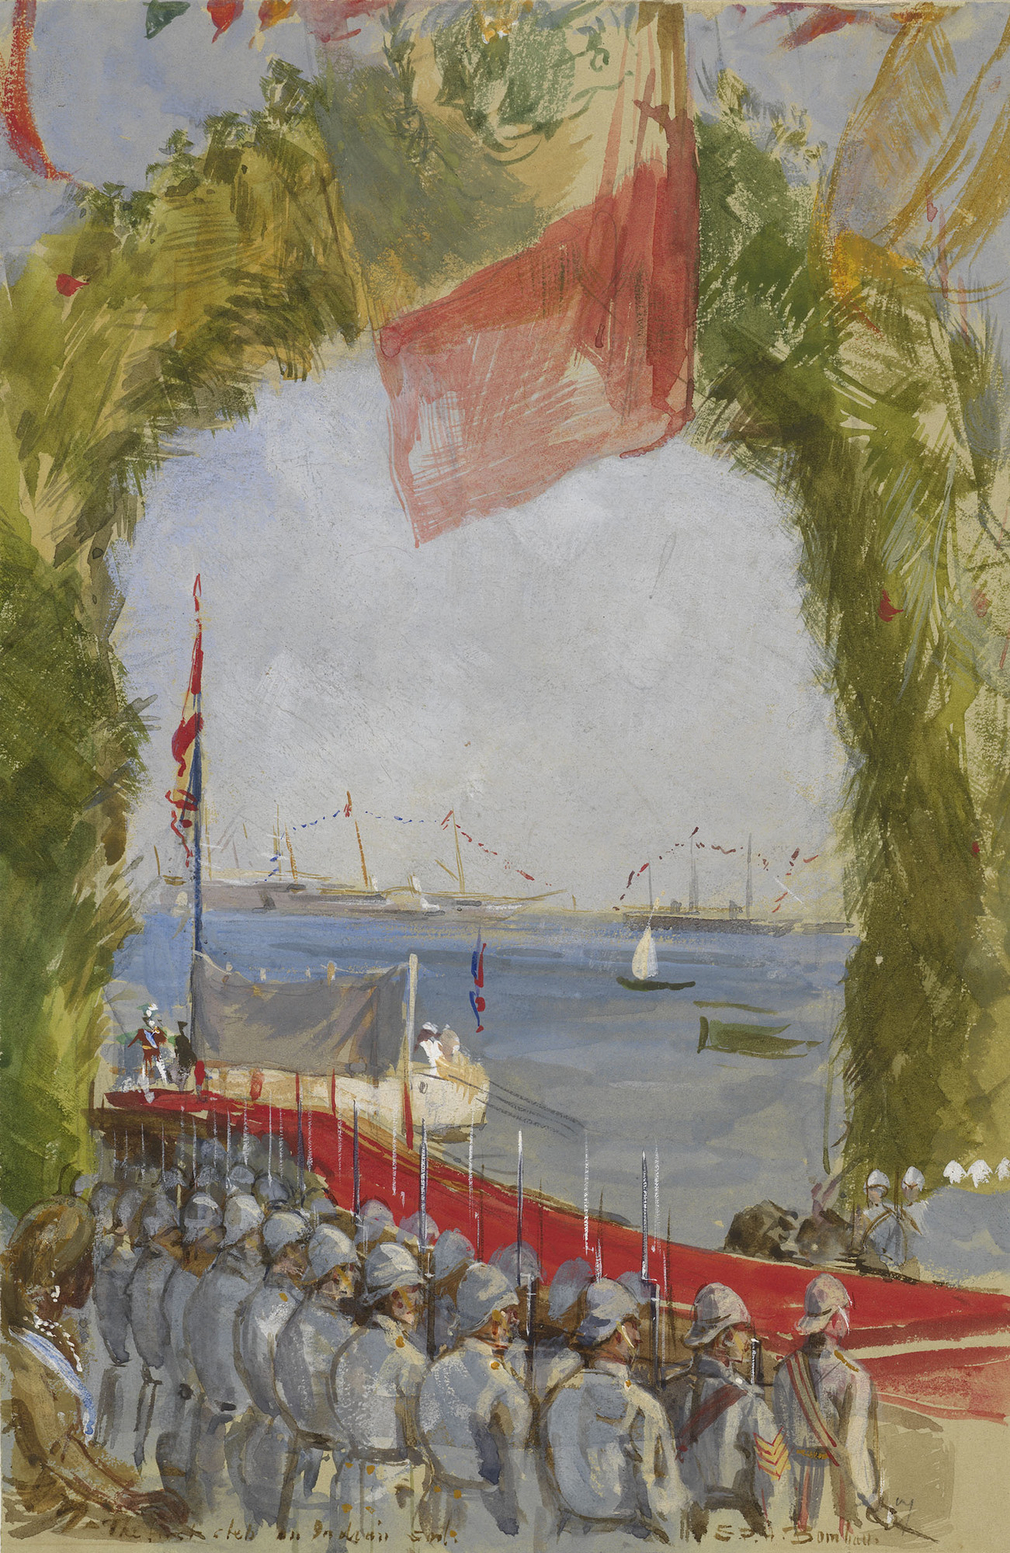 A watercolour depicting Albert Edward, the Prince of Wales, landing at the dockyard in Bombay on 8 November 1875. Inscribed along the bottom and signed: The first step on Indian soil./ S.P.H.Bombay.  In October 1875, Albert Edward, the eldest son of Queen